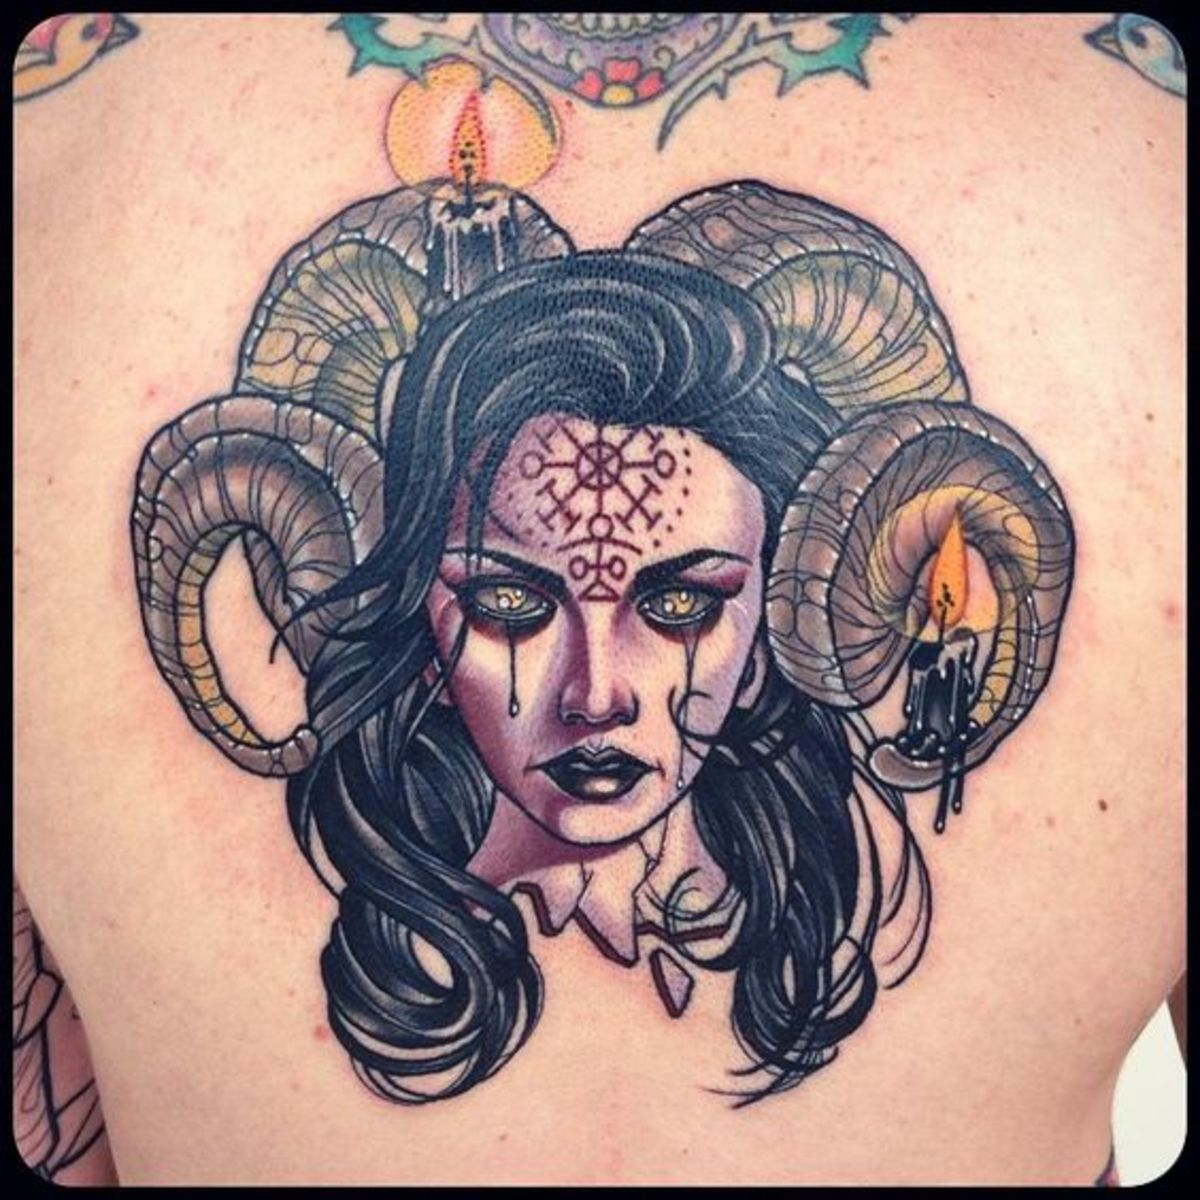 Devil Ram lady tattoo by Kat Abdy